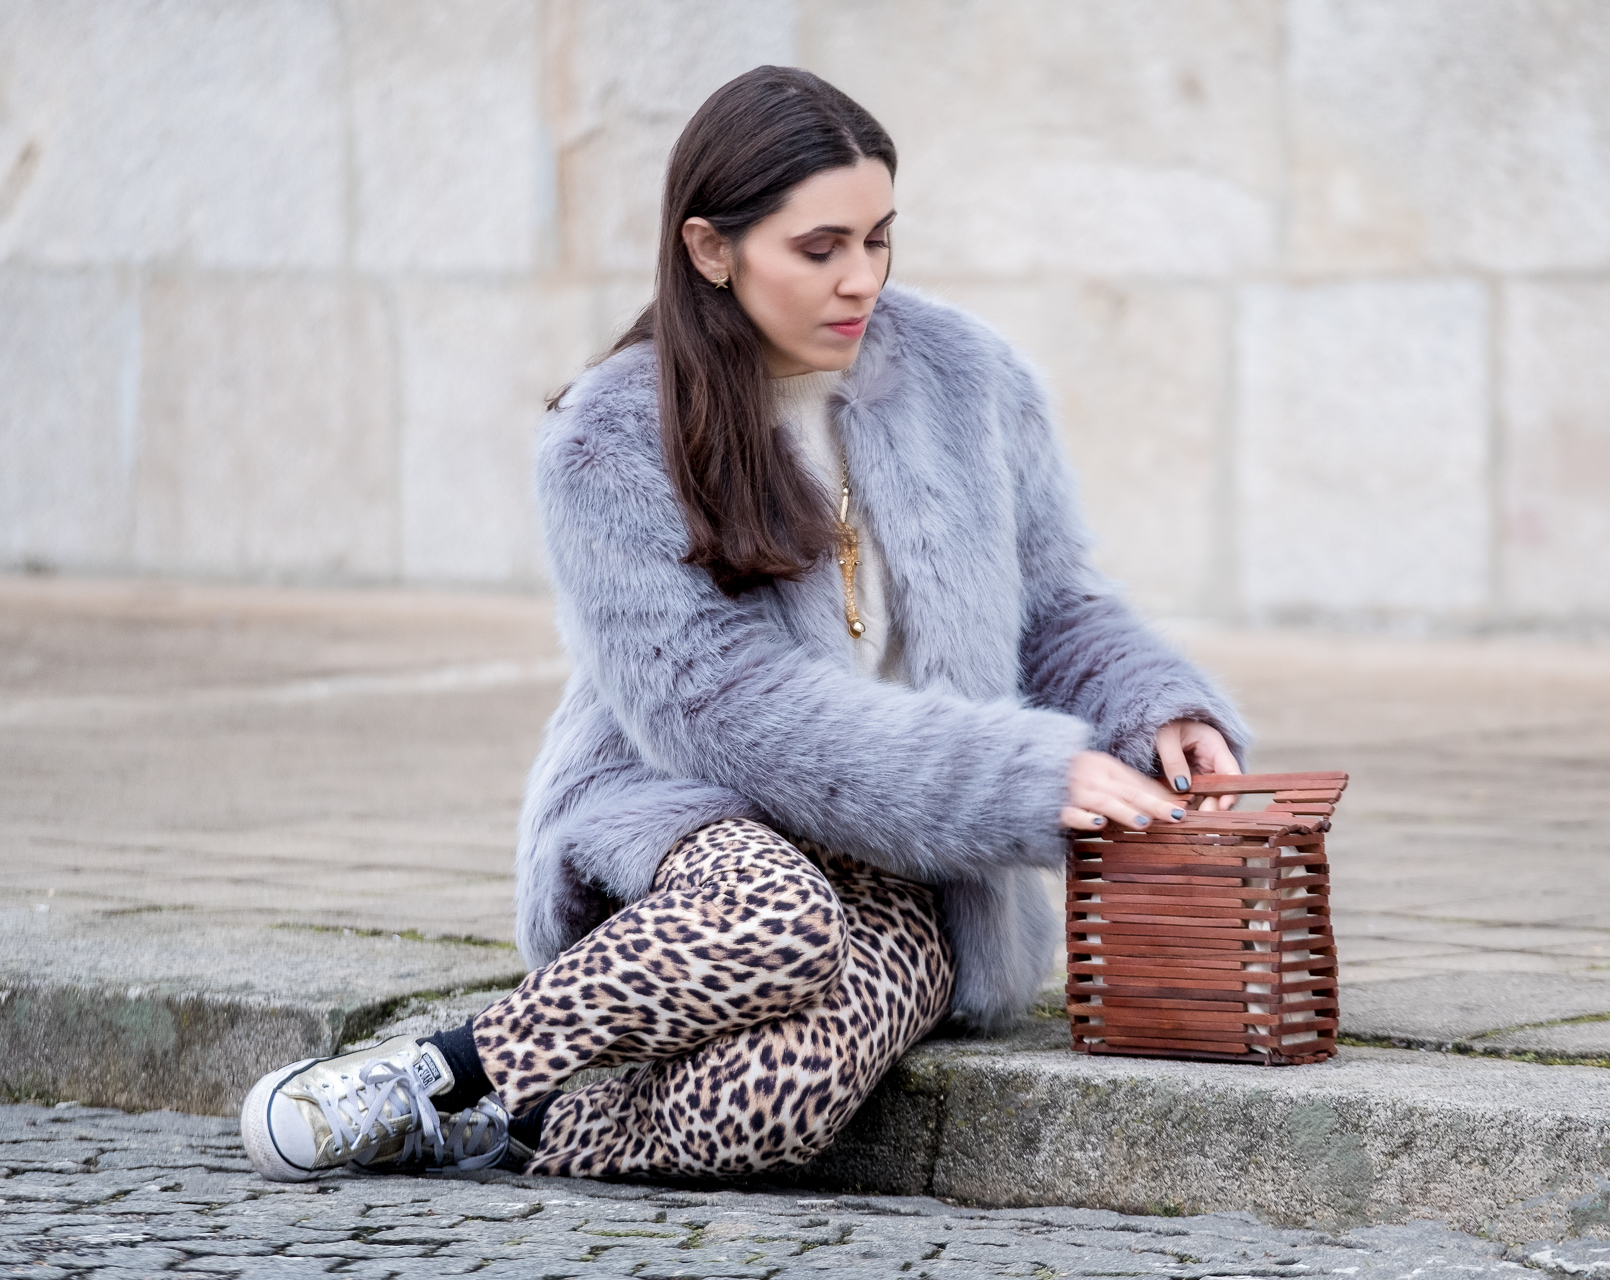 Le Fashionaire faux fur pale blue bershka coat leopard print zara trousers wood hand made zara bag gold converse all star sneakers 1212 EN faux fur pale blue bershka coat leopard print zara trousers wood hand made zara bag gold converse all star sneakers 1212 EN